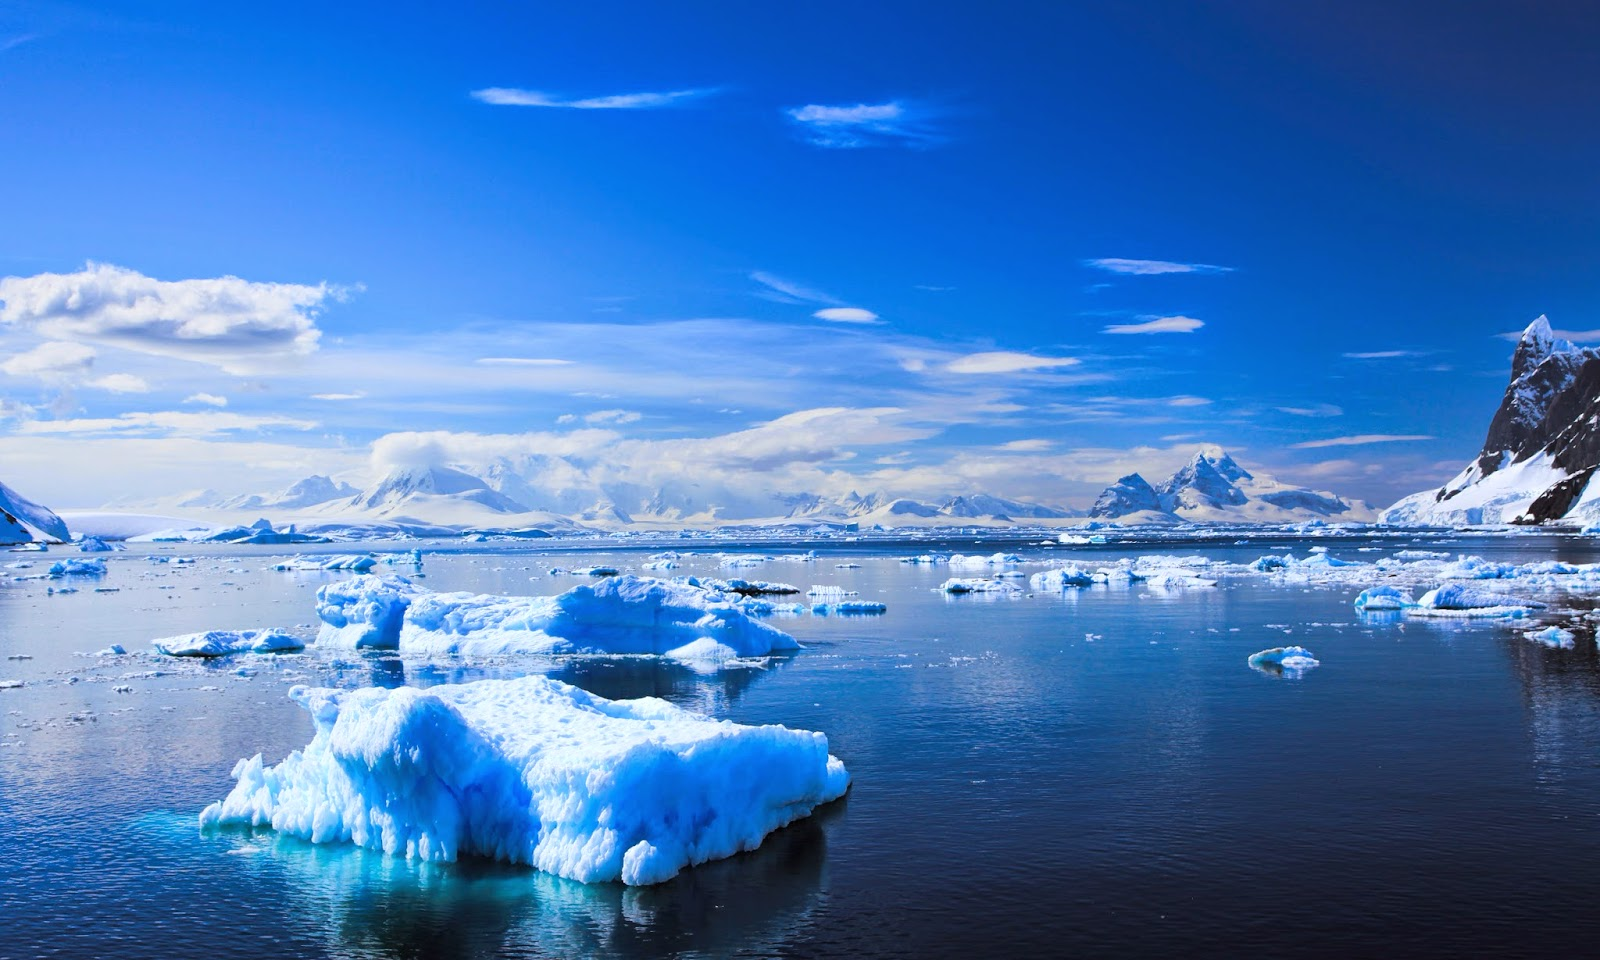 Full Hd Wallpapers For Iphone 4 Antarctica Hd Wallpapers Hd Wallpapers High Definition